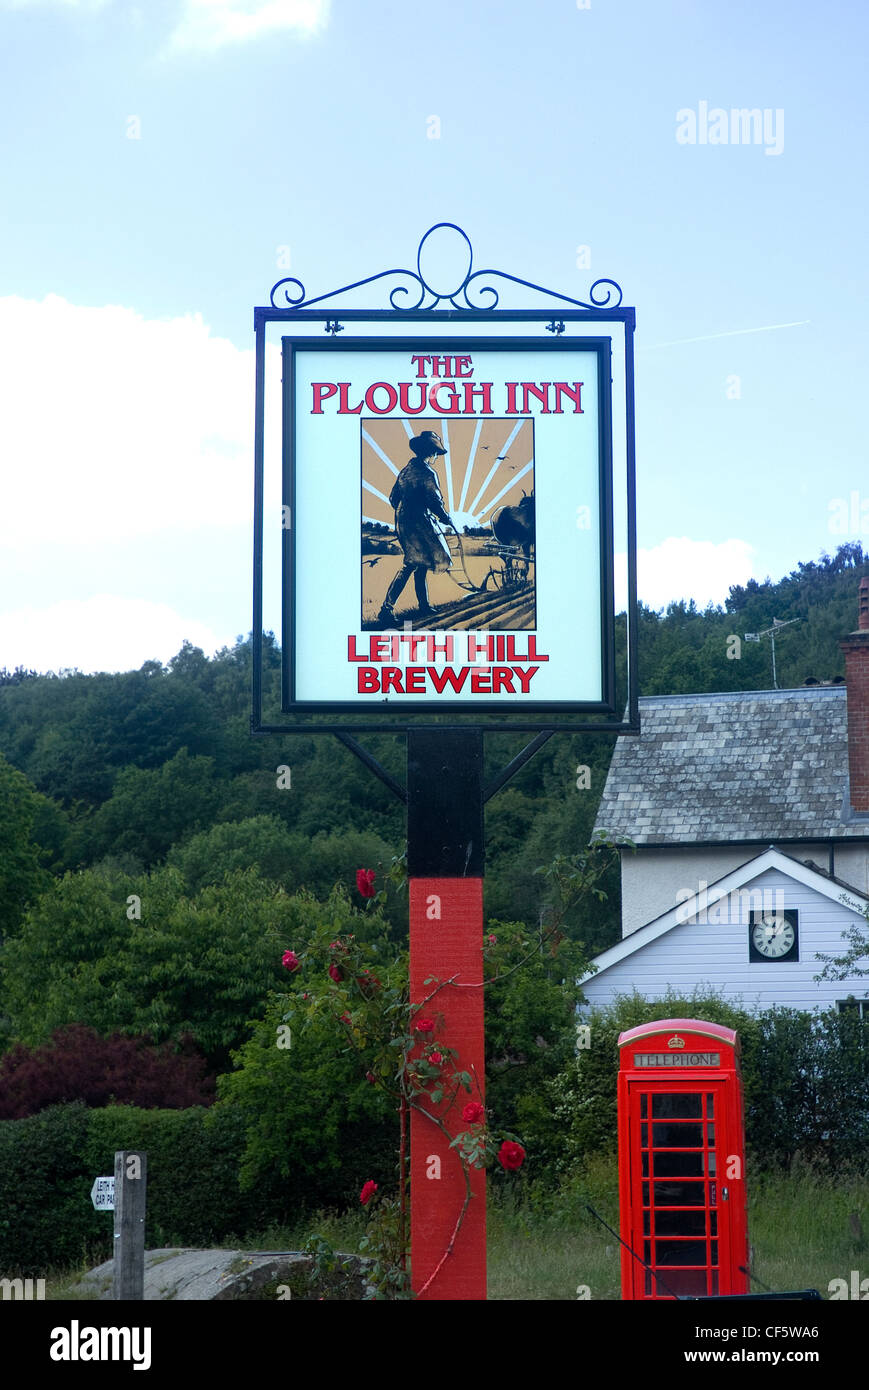 The Plough Inn pub sign and traditional red telephone box near Coldharbour. - Stock Image